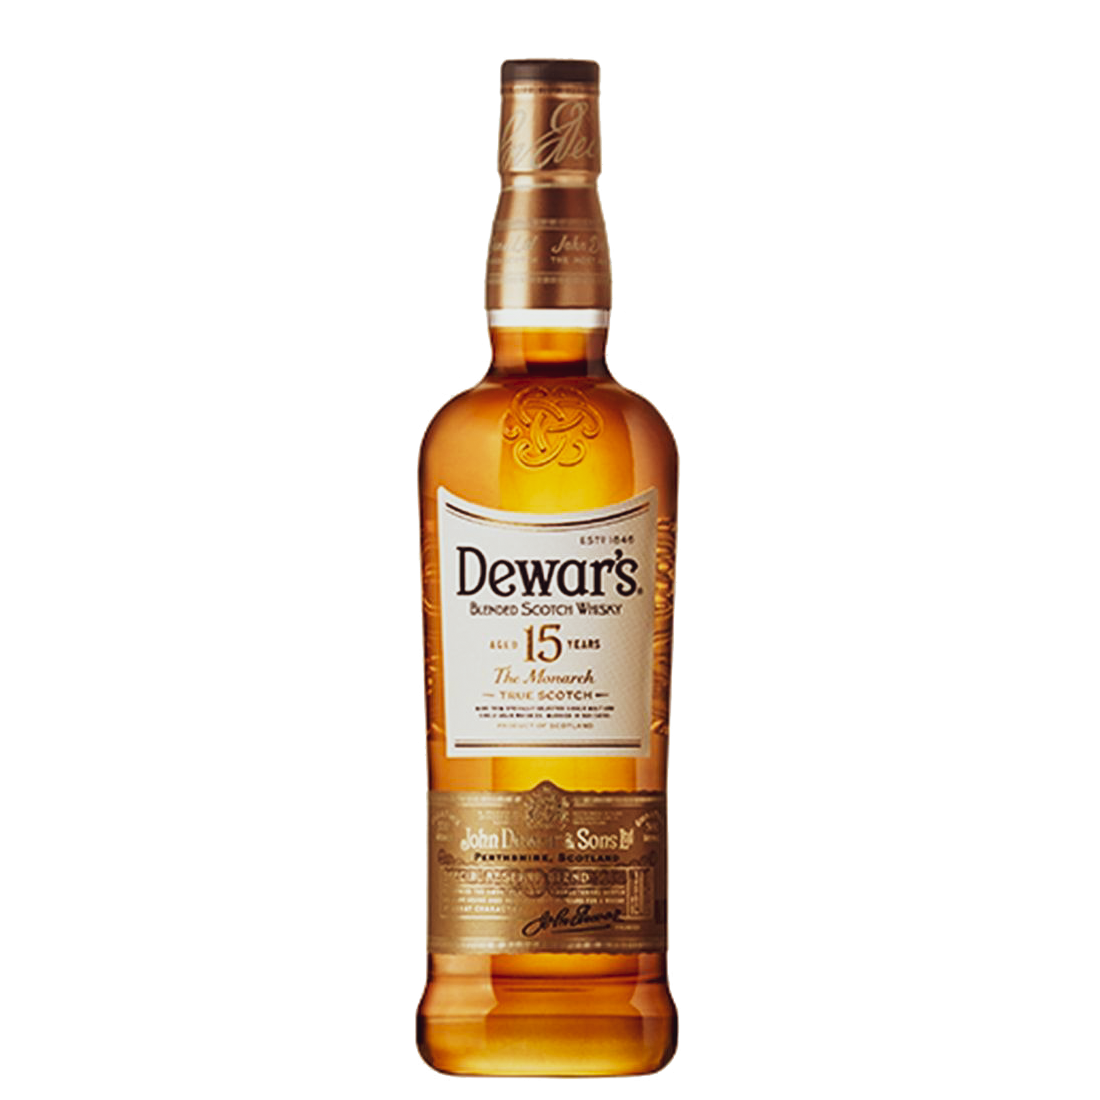 Dewars 15 Year Old Blended Scotch